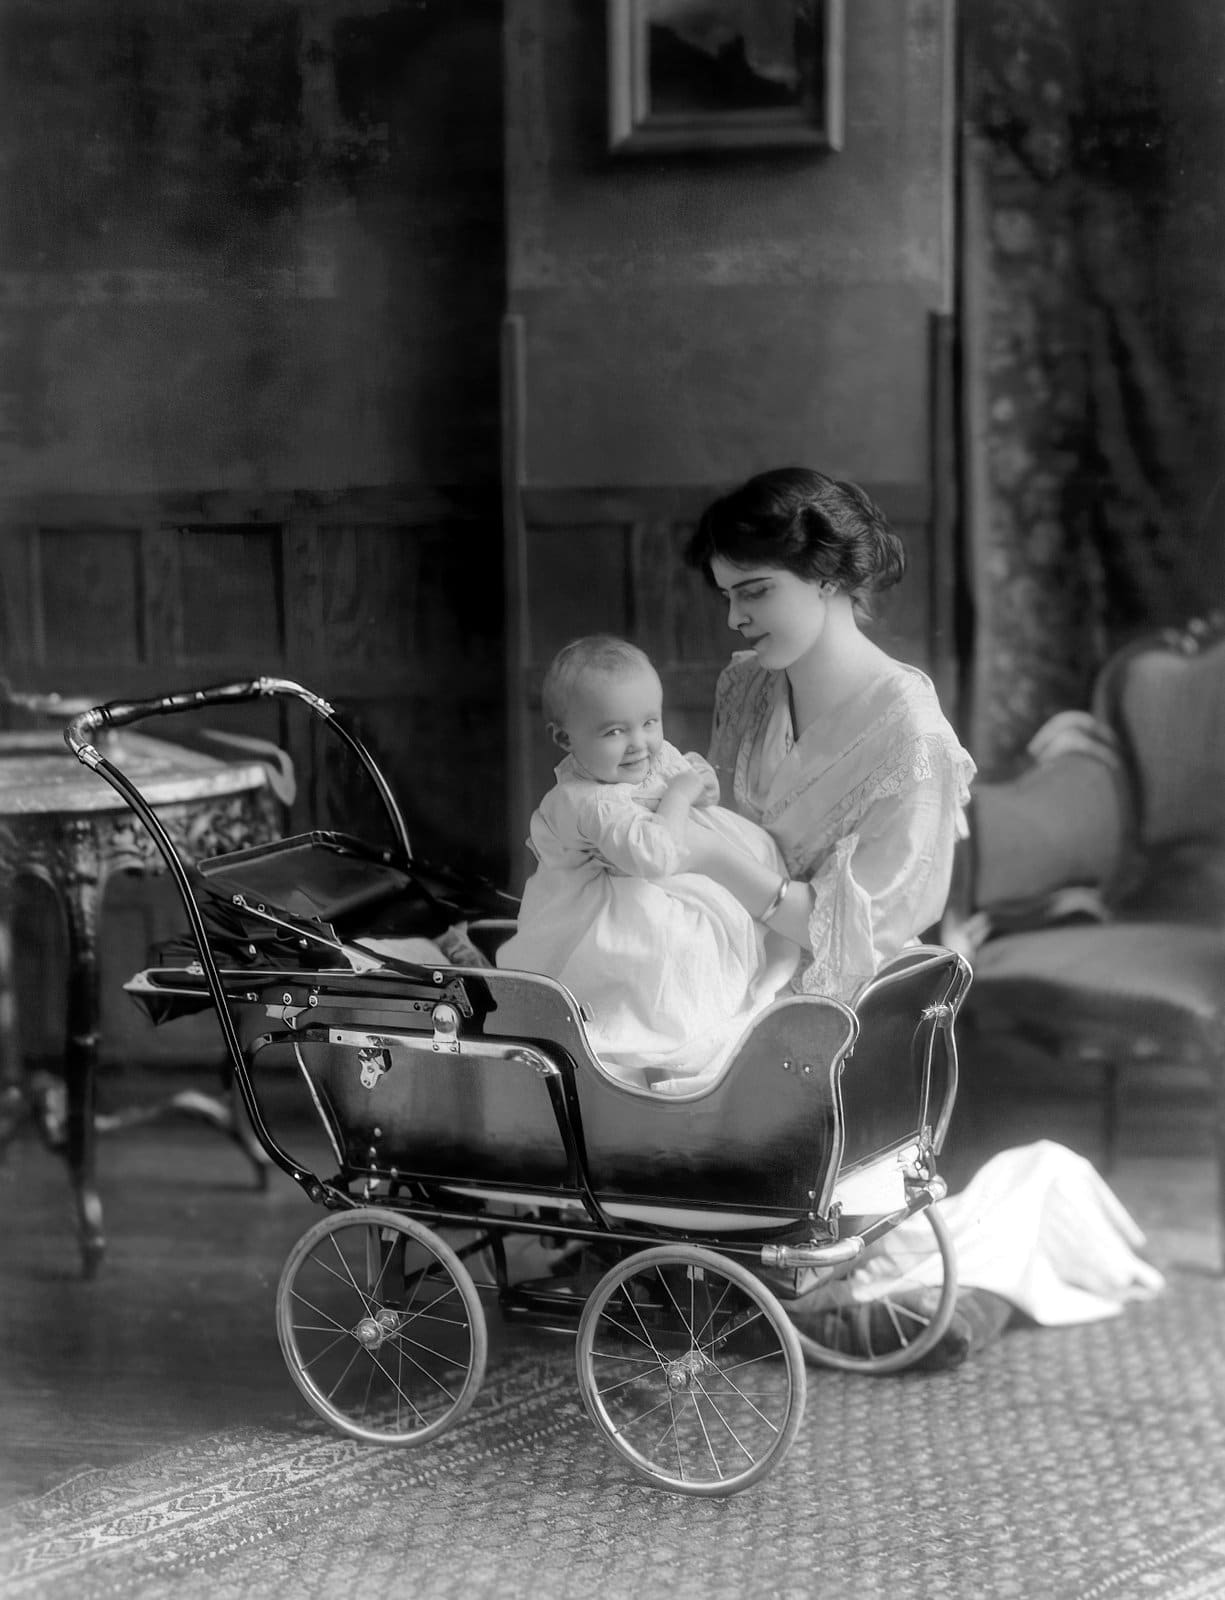 Baby in a fancy baby carriage (1913)